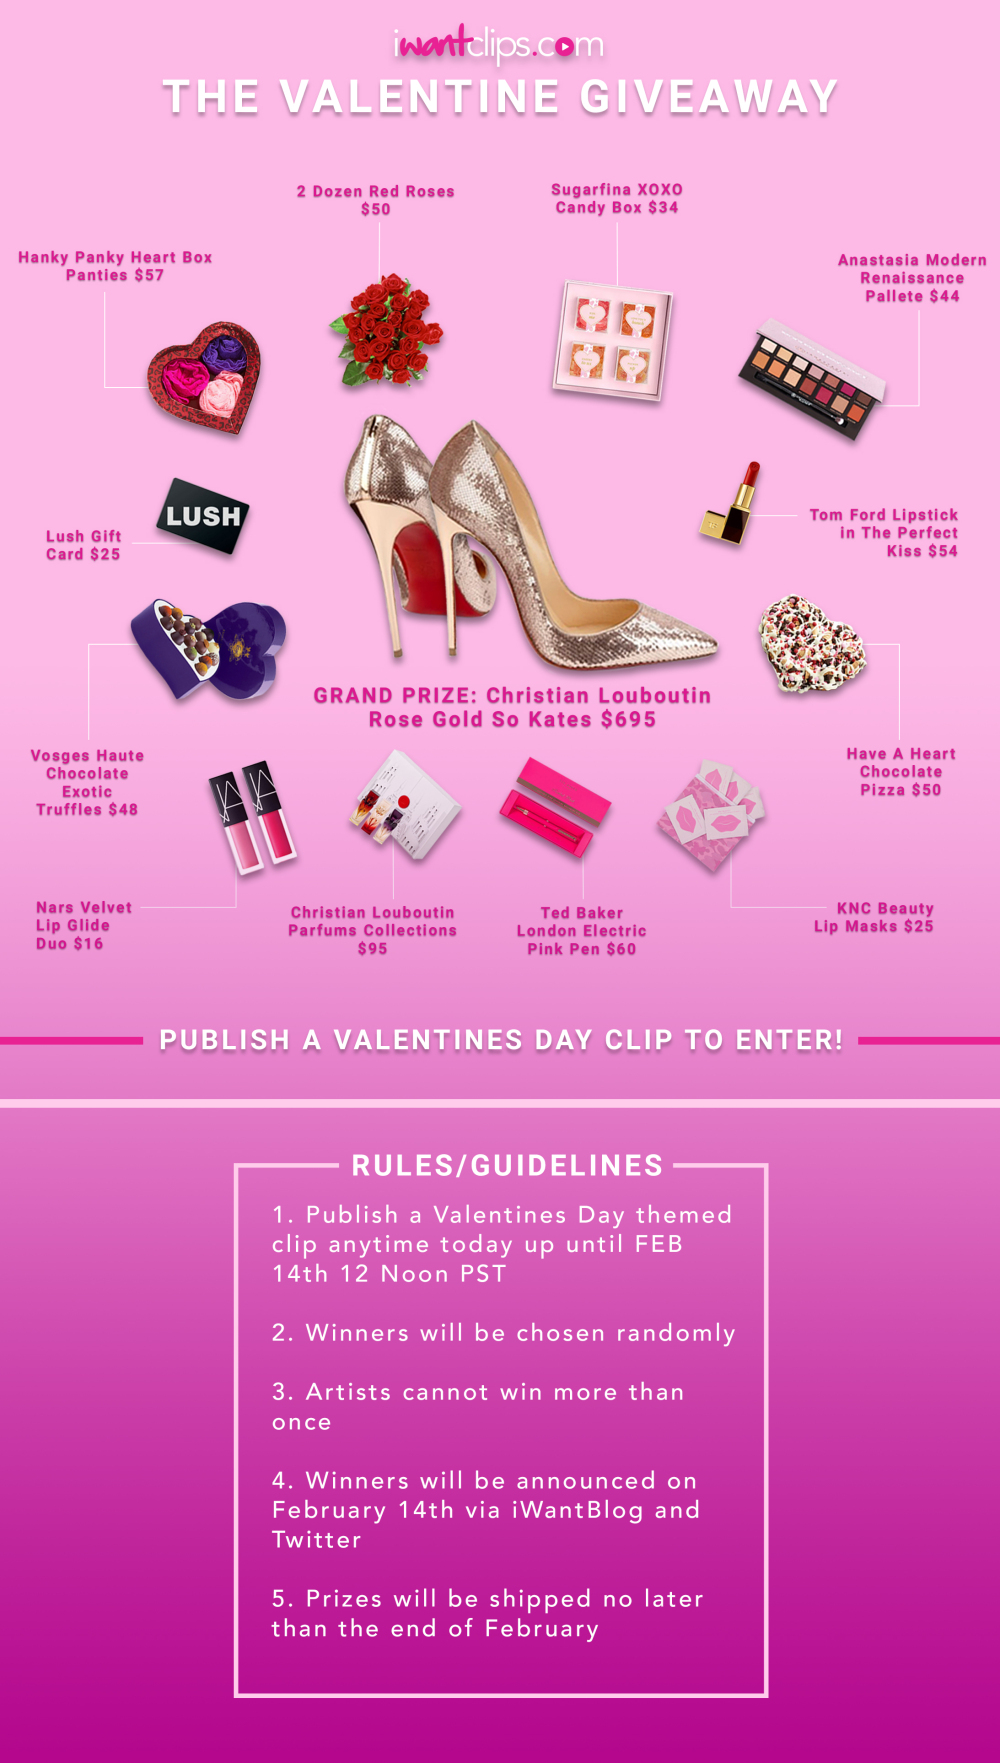 iWantClips 2018 Valentine's Day Giveaway